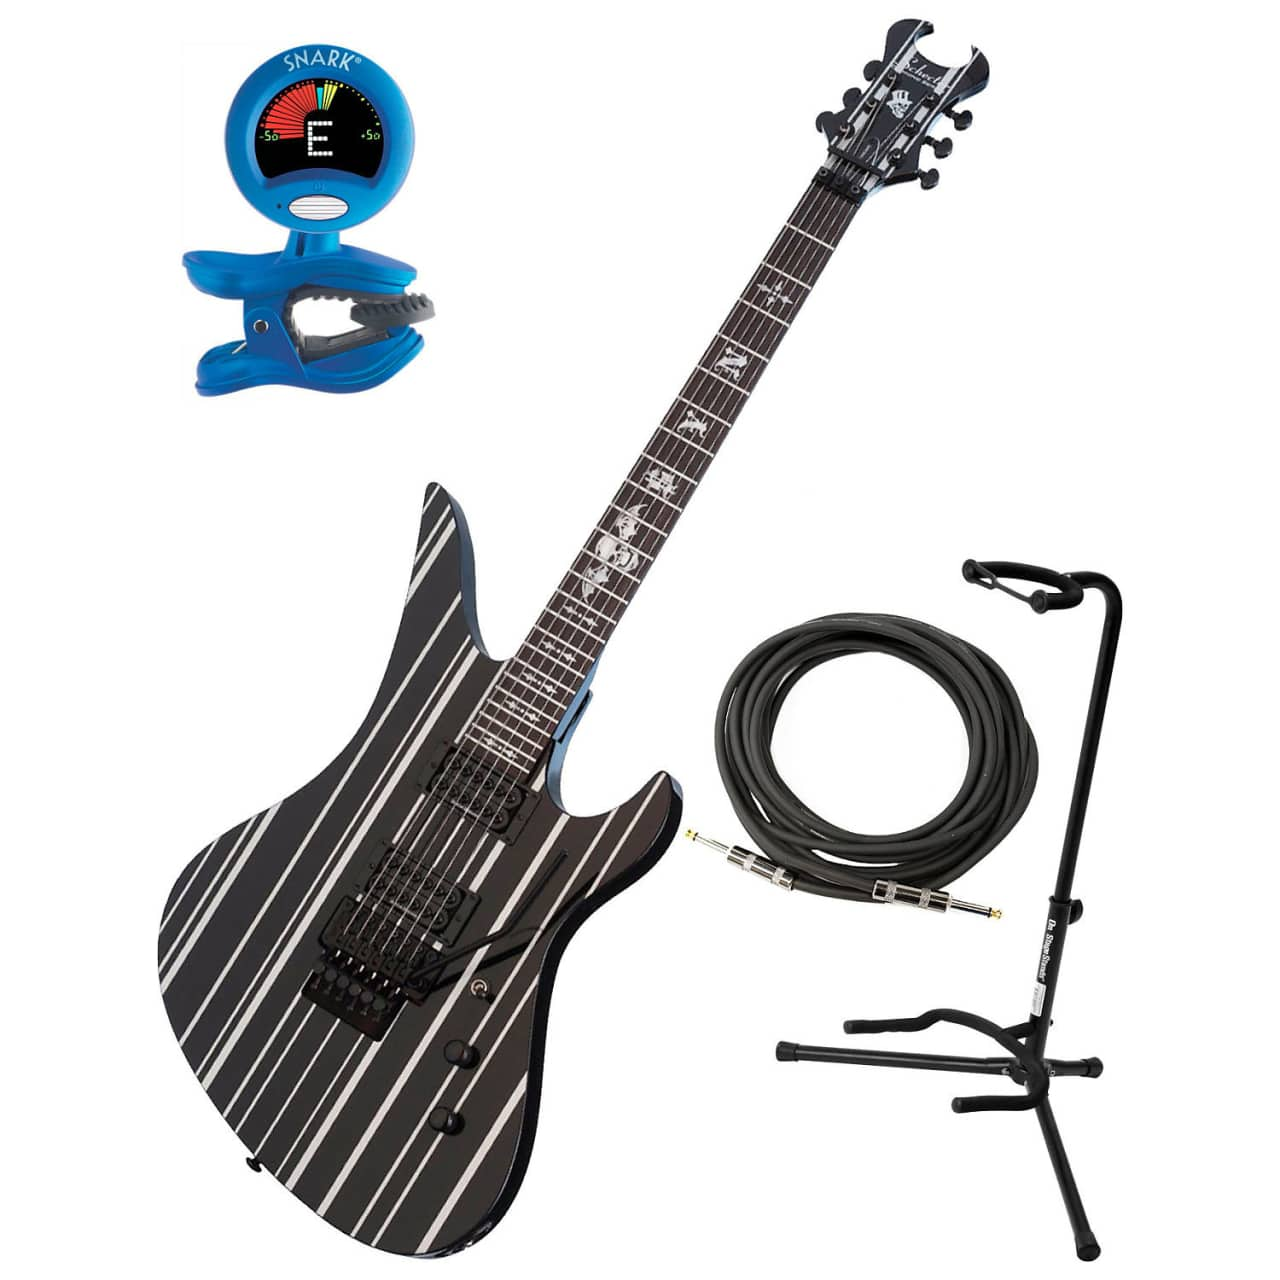 Schecter Synyster Gates Standard Guitar Bundle Geartree